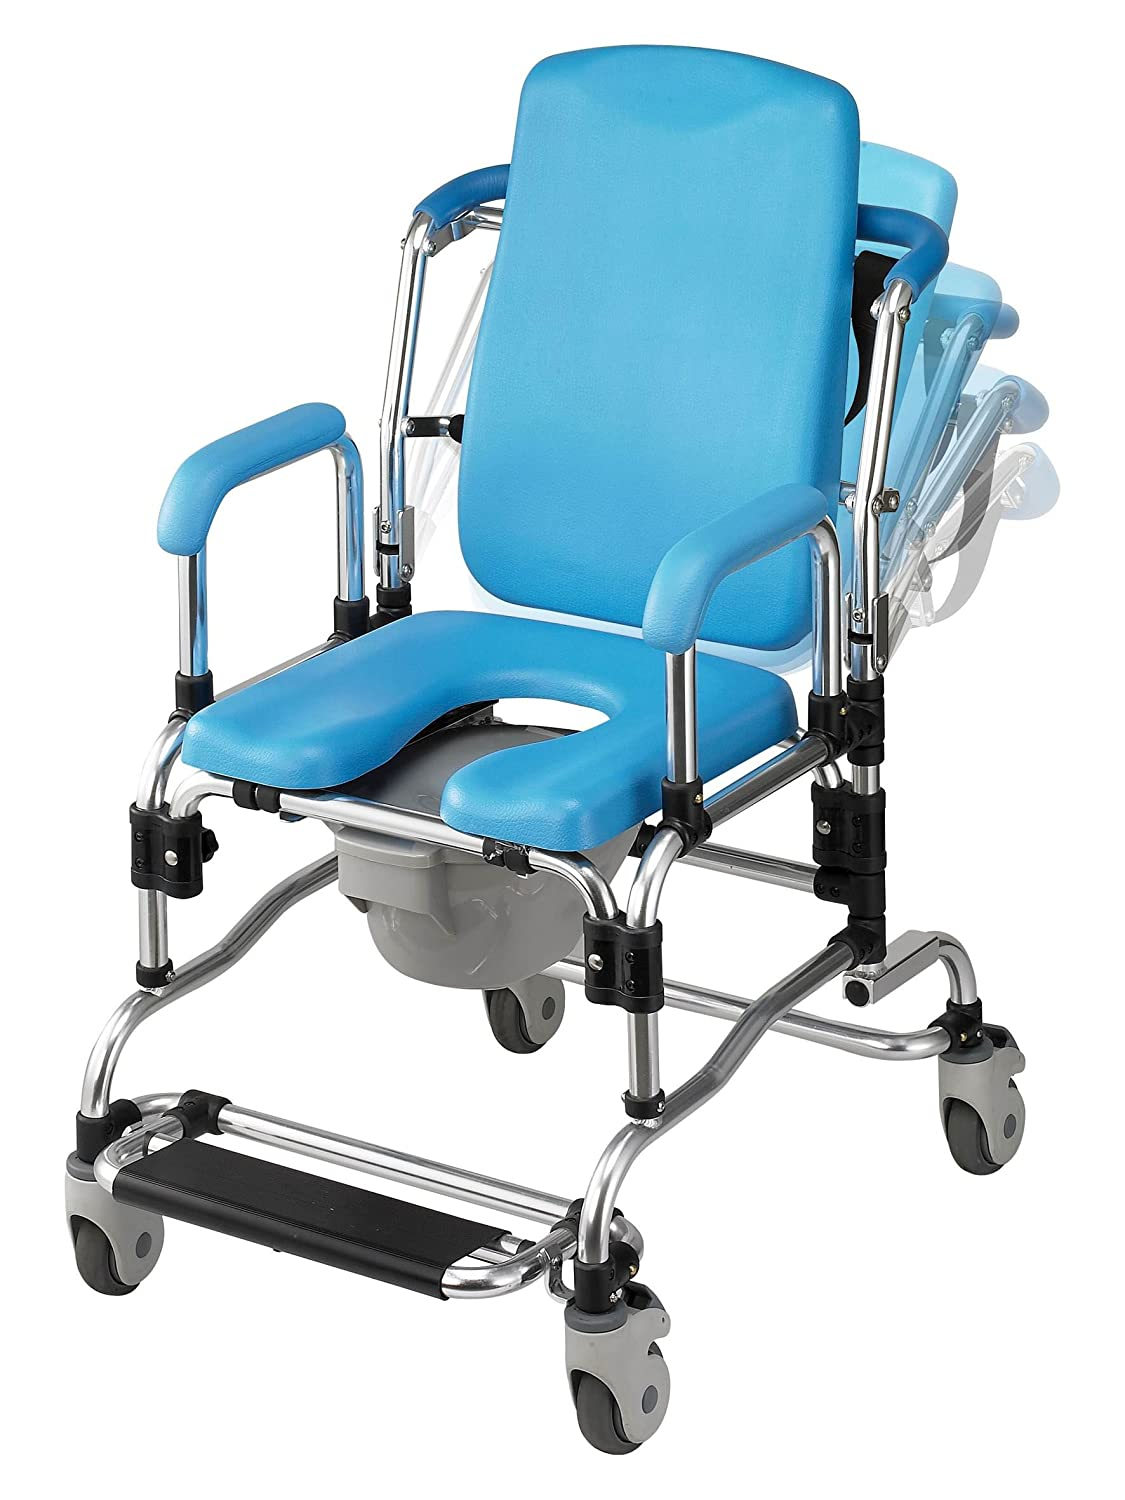 Amazon.com: Laguna Professional Reclining Shower Chair, Instutional ...